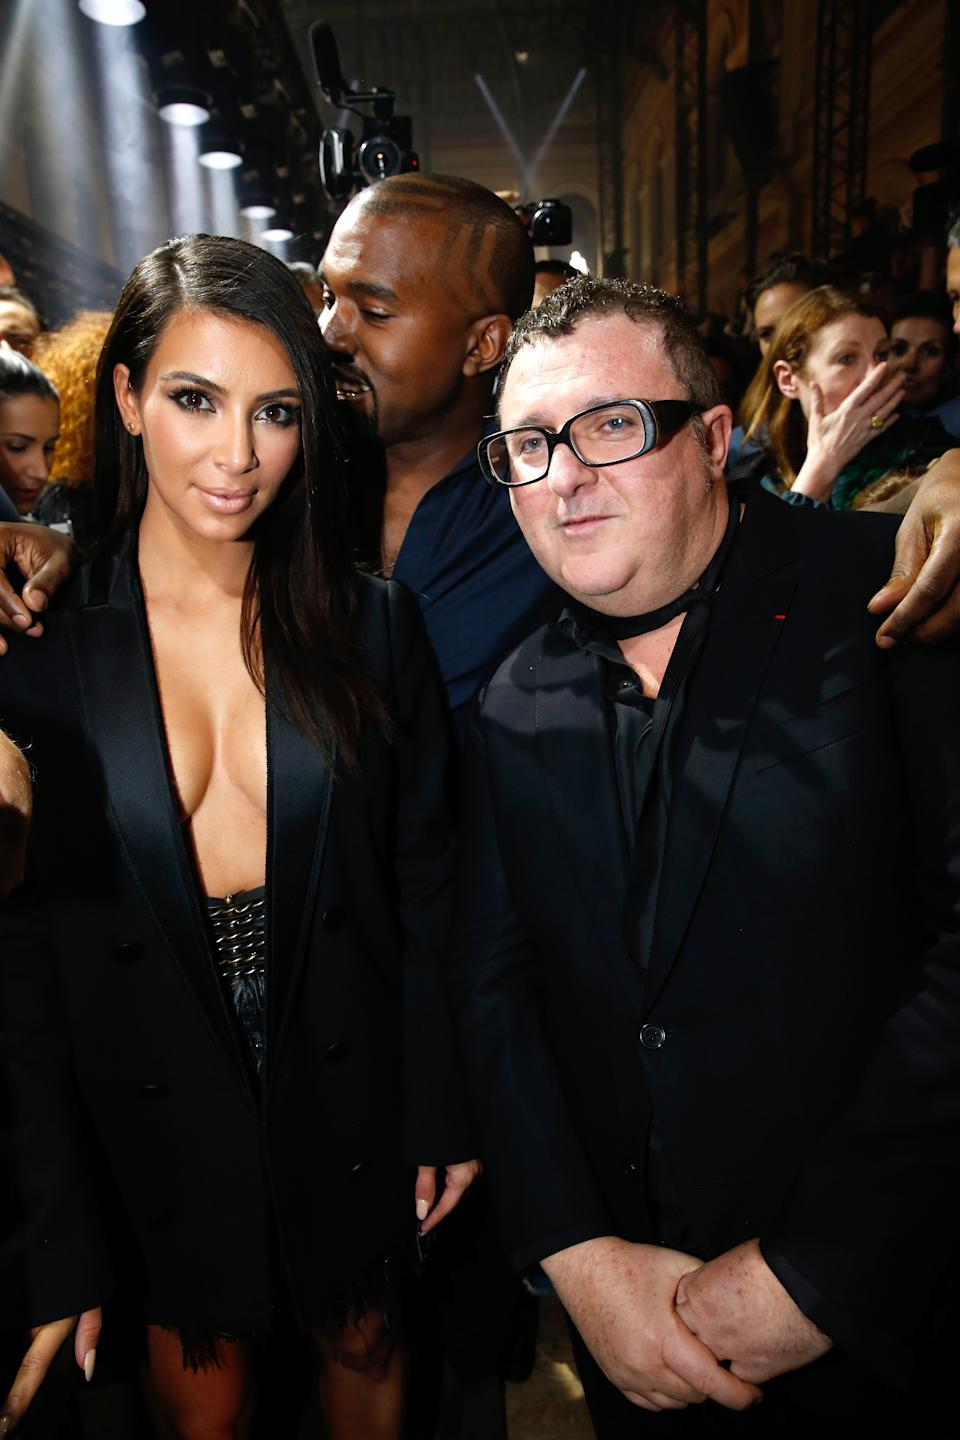 Kim Kardashian, Kanye West and Alber Elbaz depicted in Paris, France during a 2014 Lanvin fashion show. (Photo: Rindoff/Dufour/French Select/Getty Images)